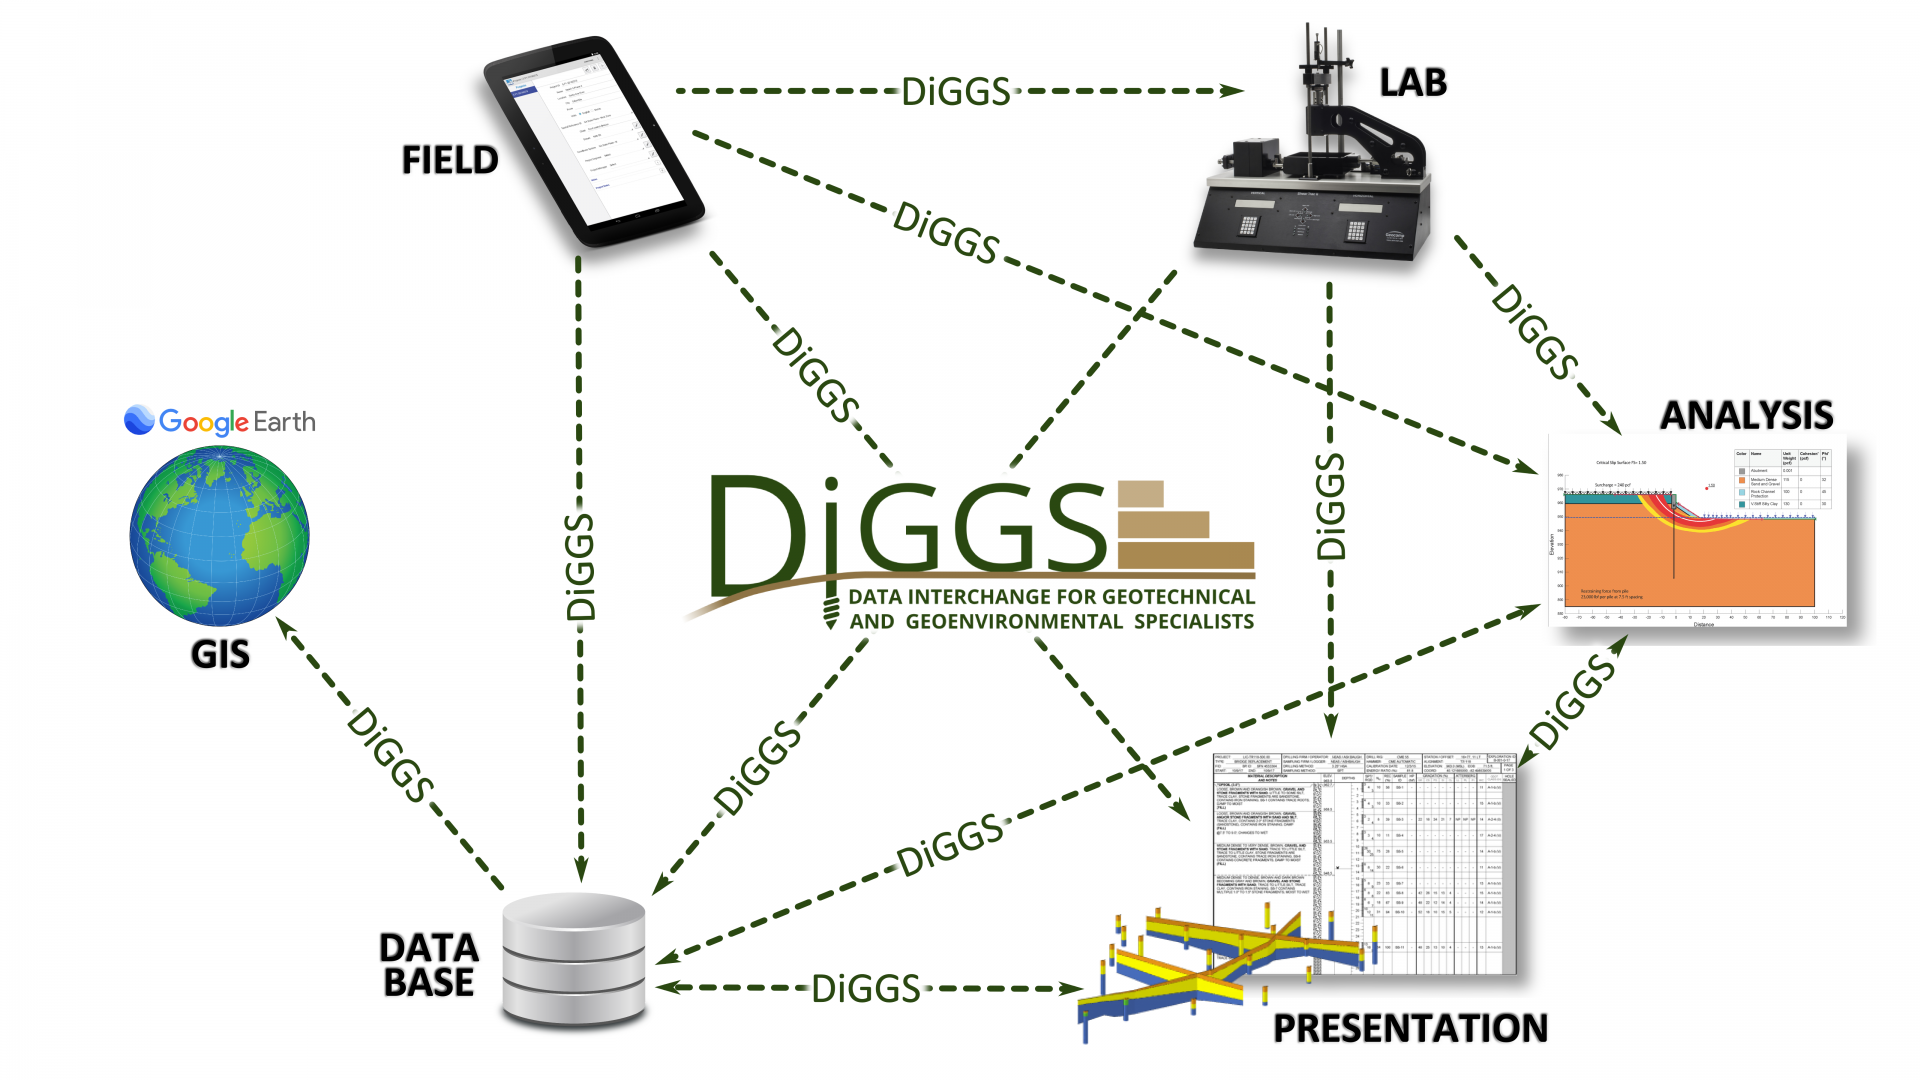 DiGGS allows the transfer of geotechnical data